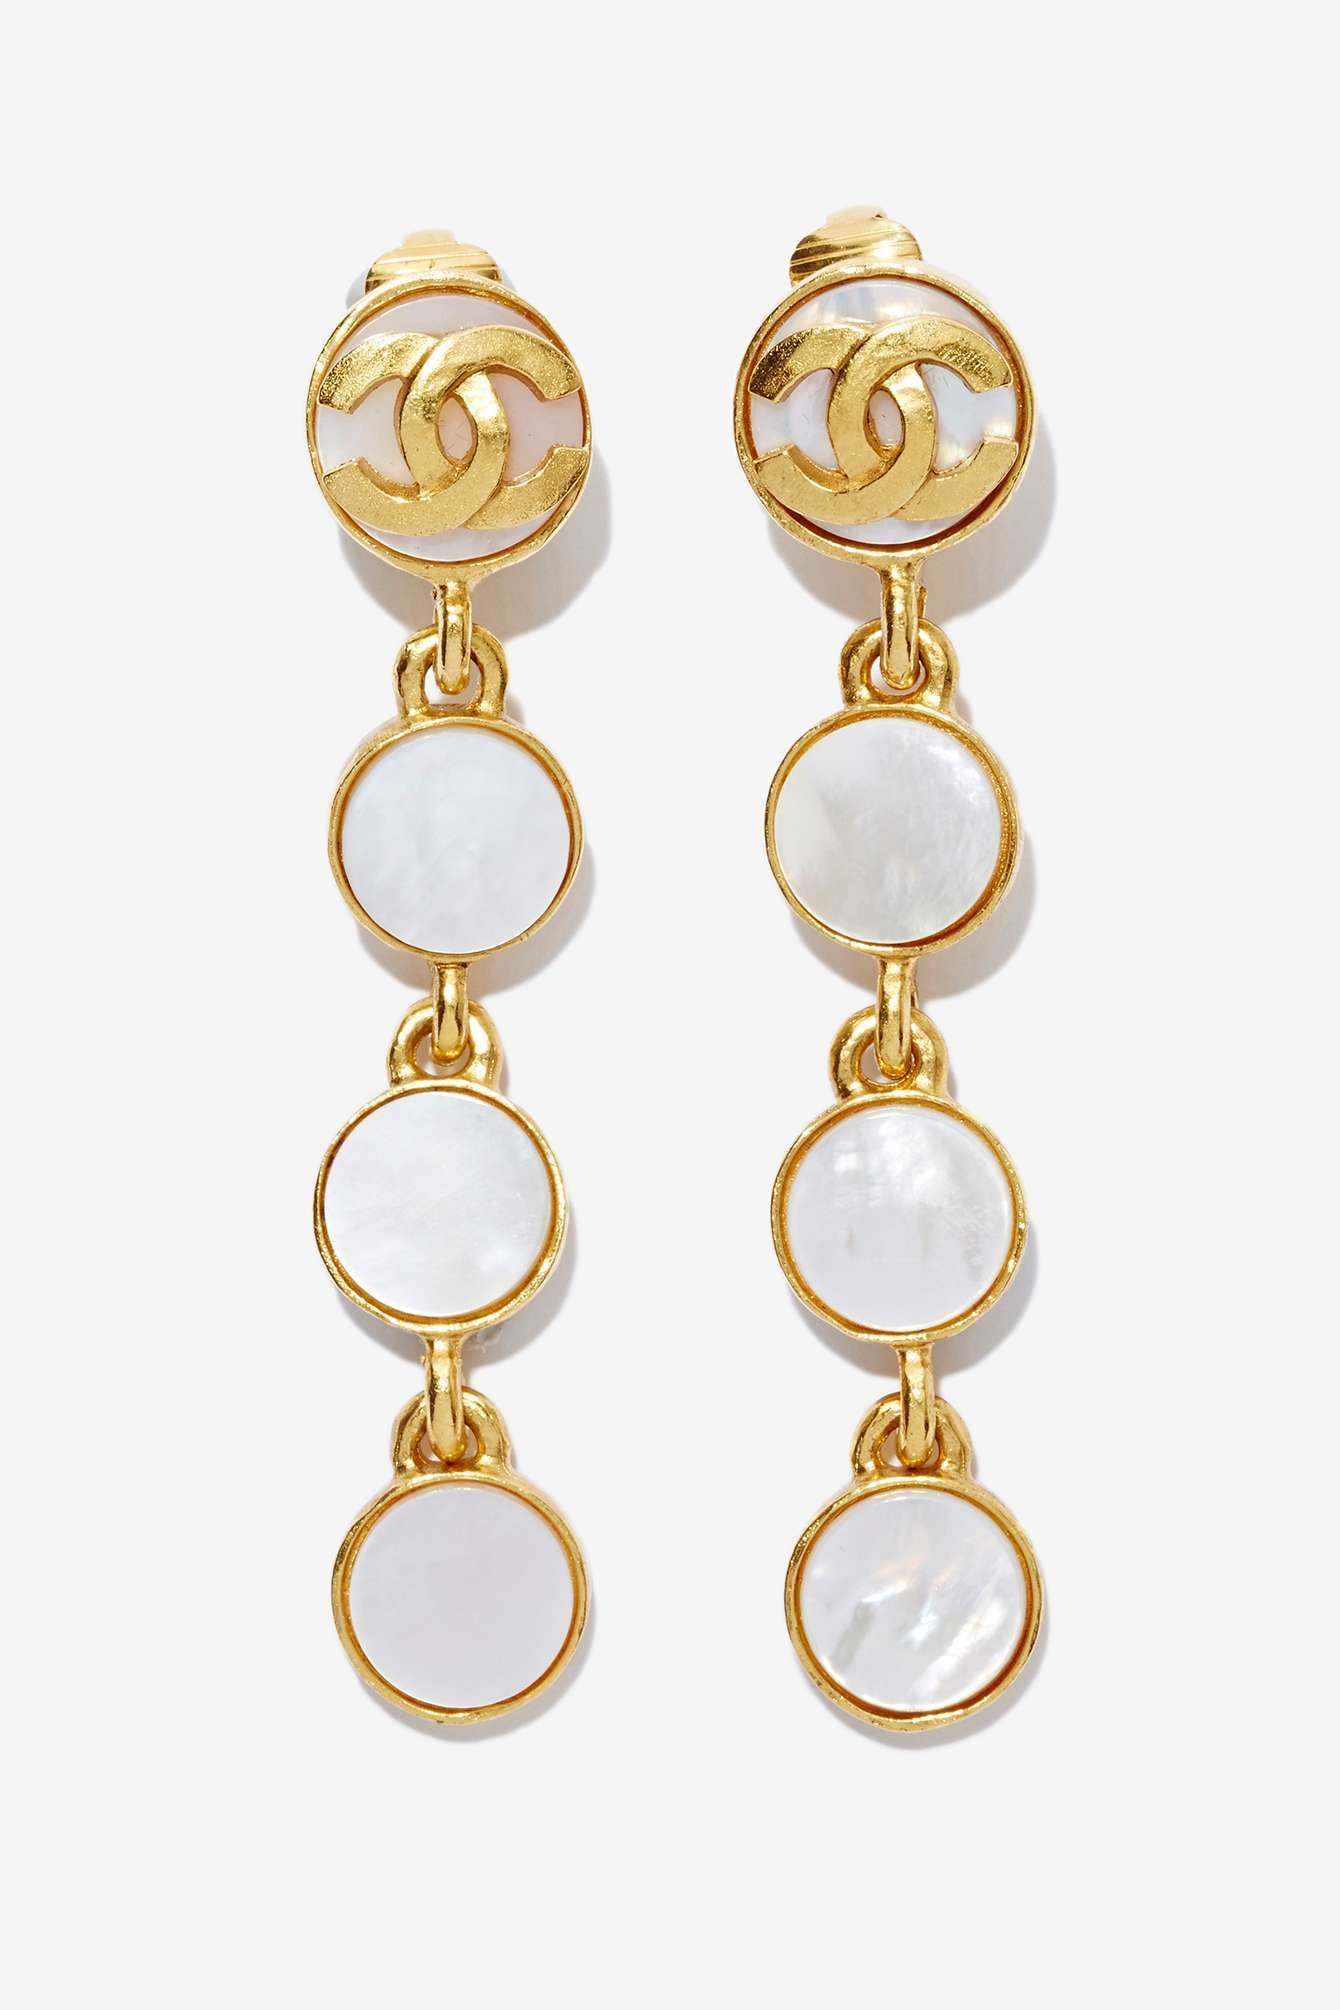 5b1a7c7e53 Vintage Chanel Mother of Pearl Earrings | Shop Chanel at Nasty Gal ...